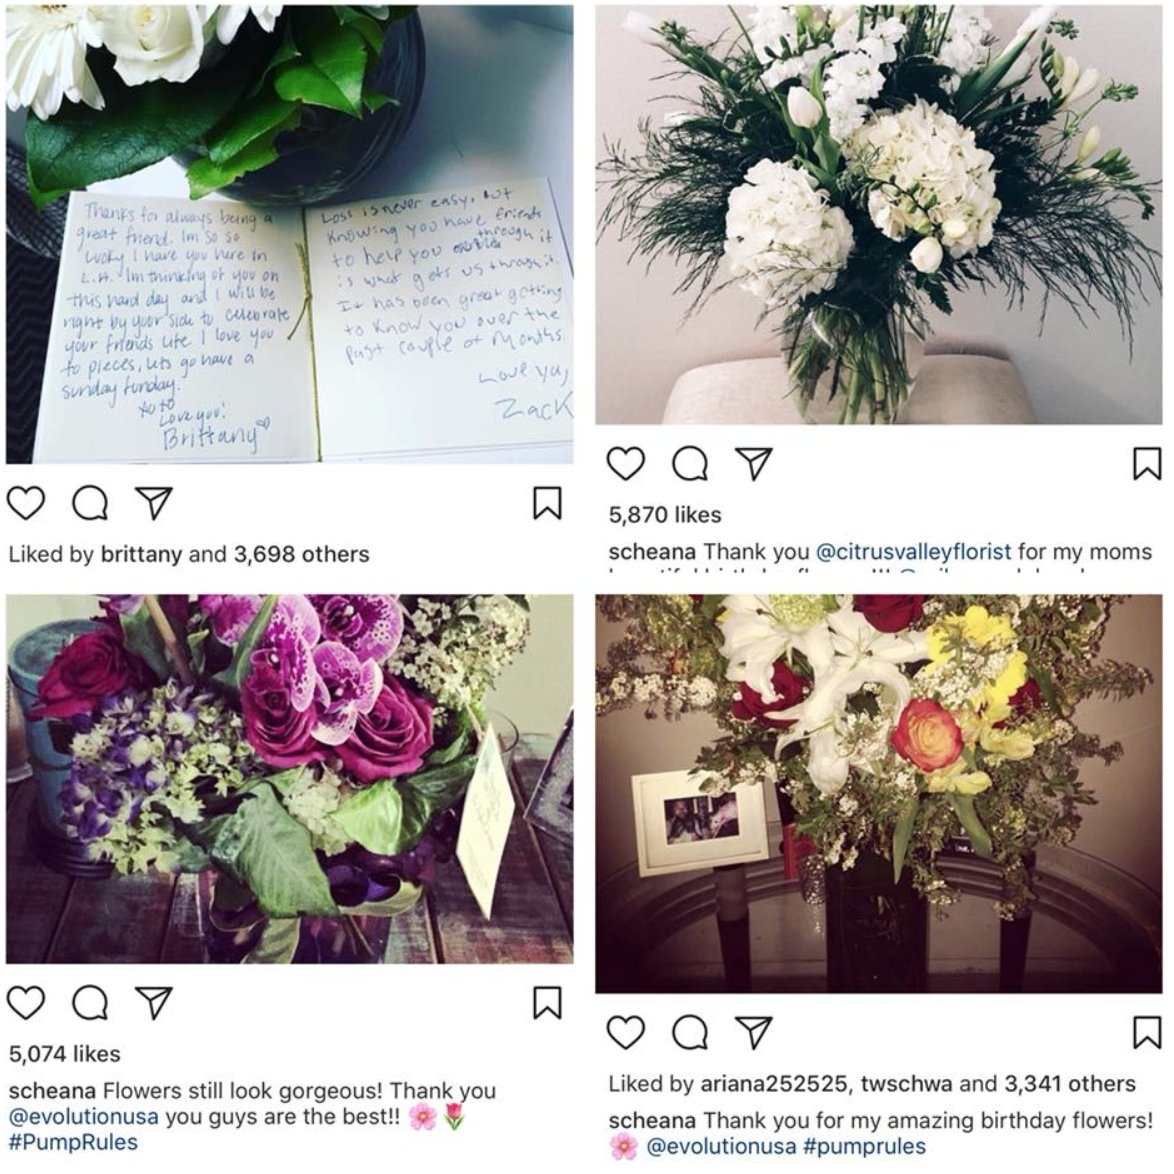 Loveandyc on twitter pumprules photo credit shanan anthony loveandyc on twitter pumprules photo credit shanan anthony scheana im not a flower person really also scheana izmirmasajfo